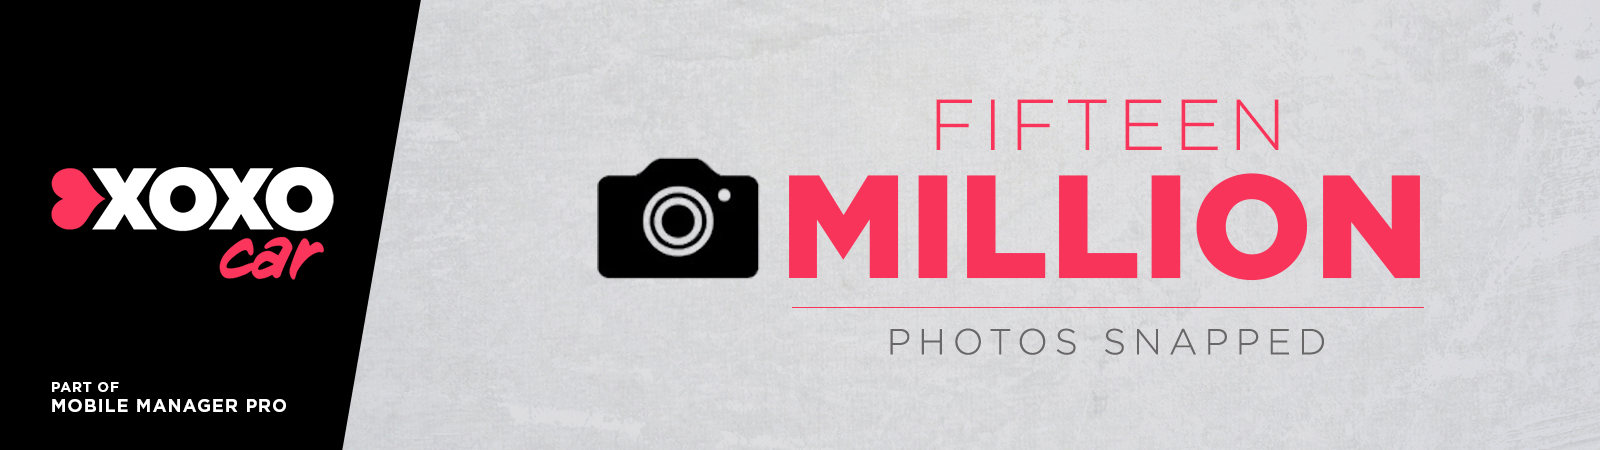 15 Million Photos Used to Sell More Services!